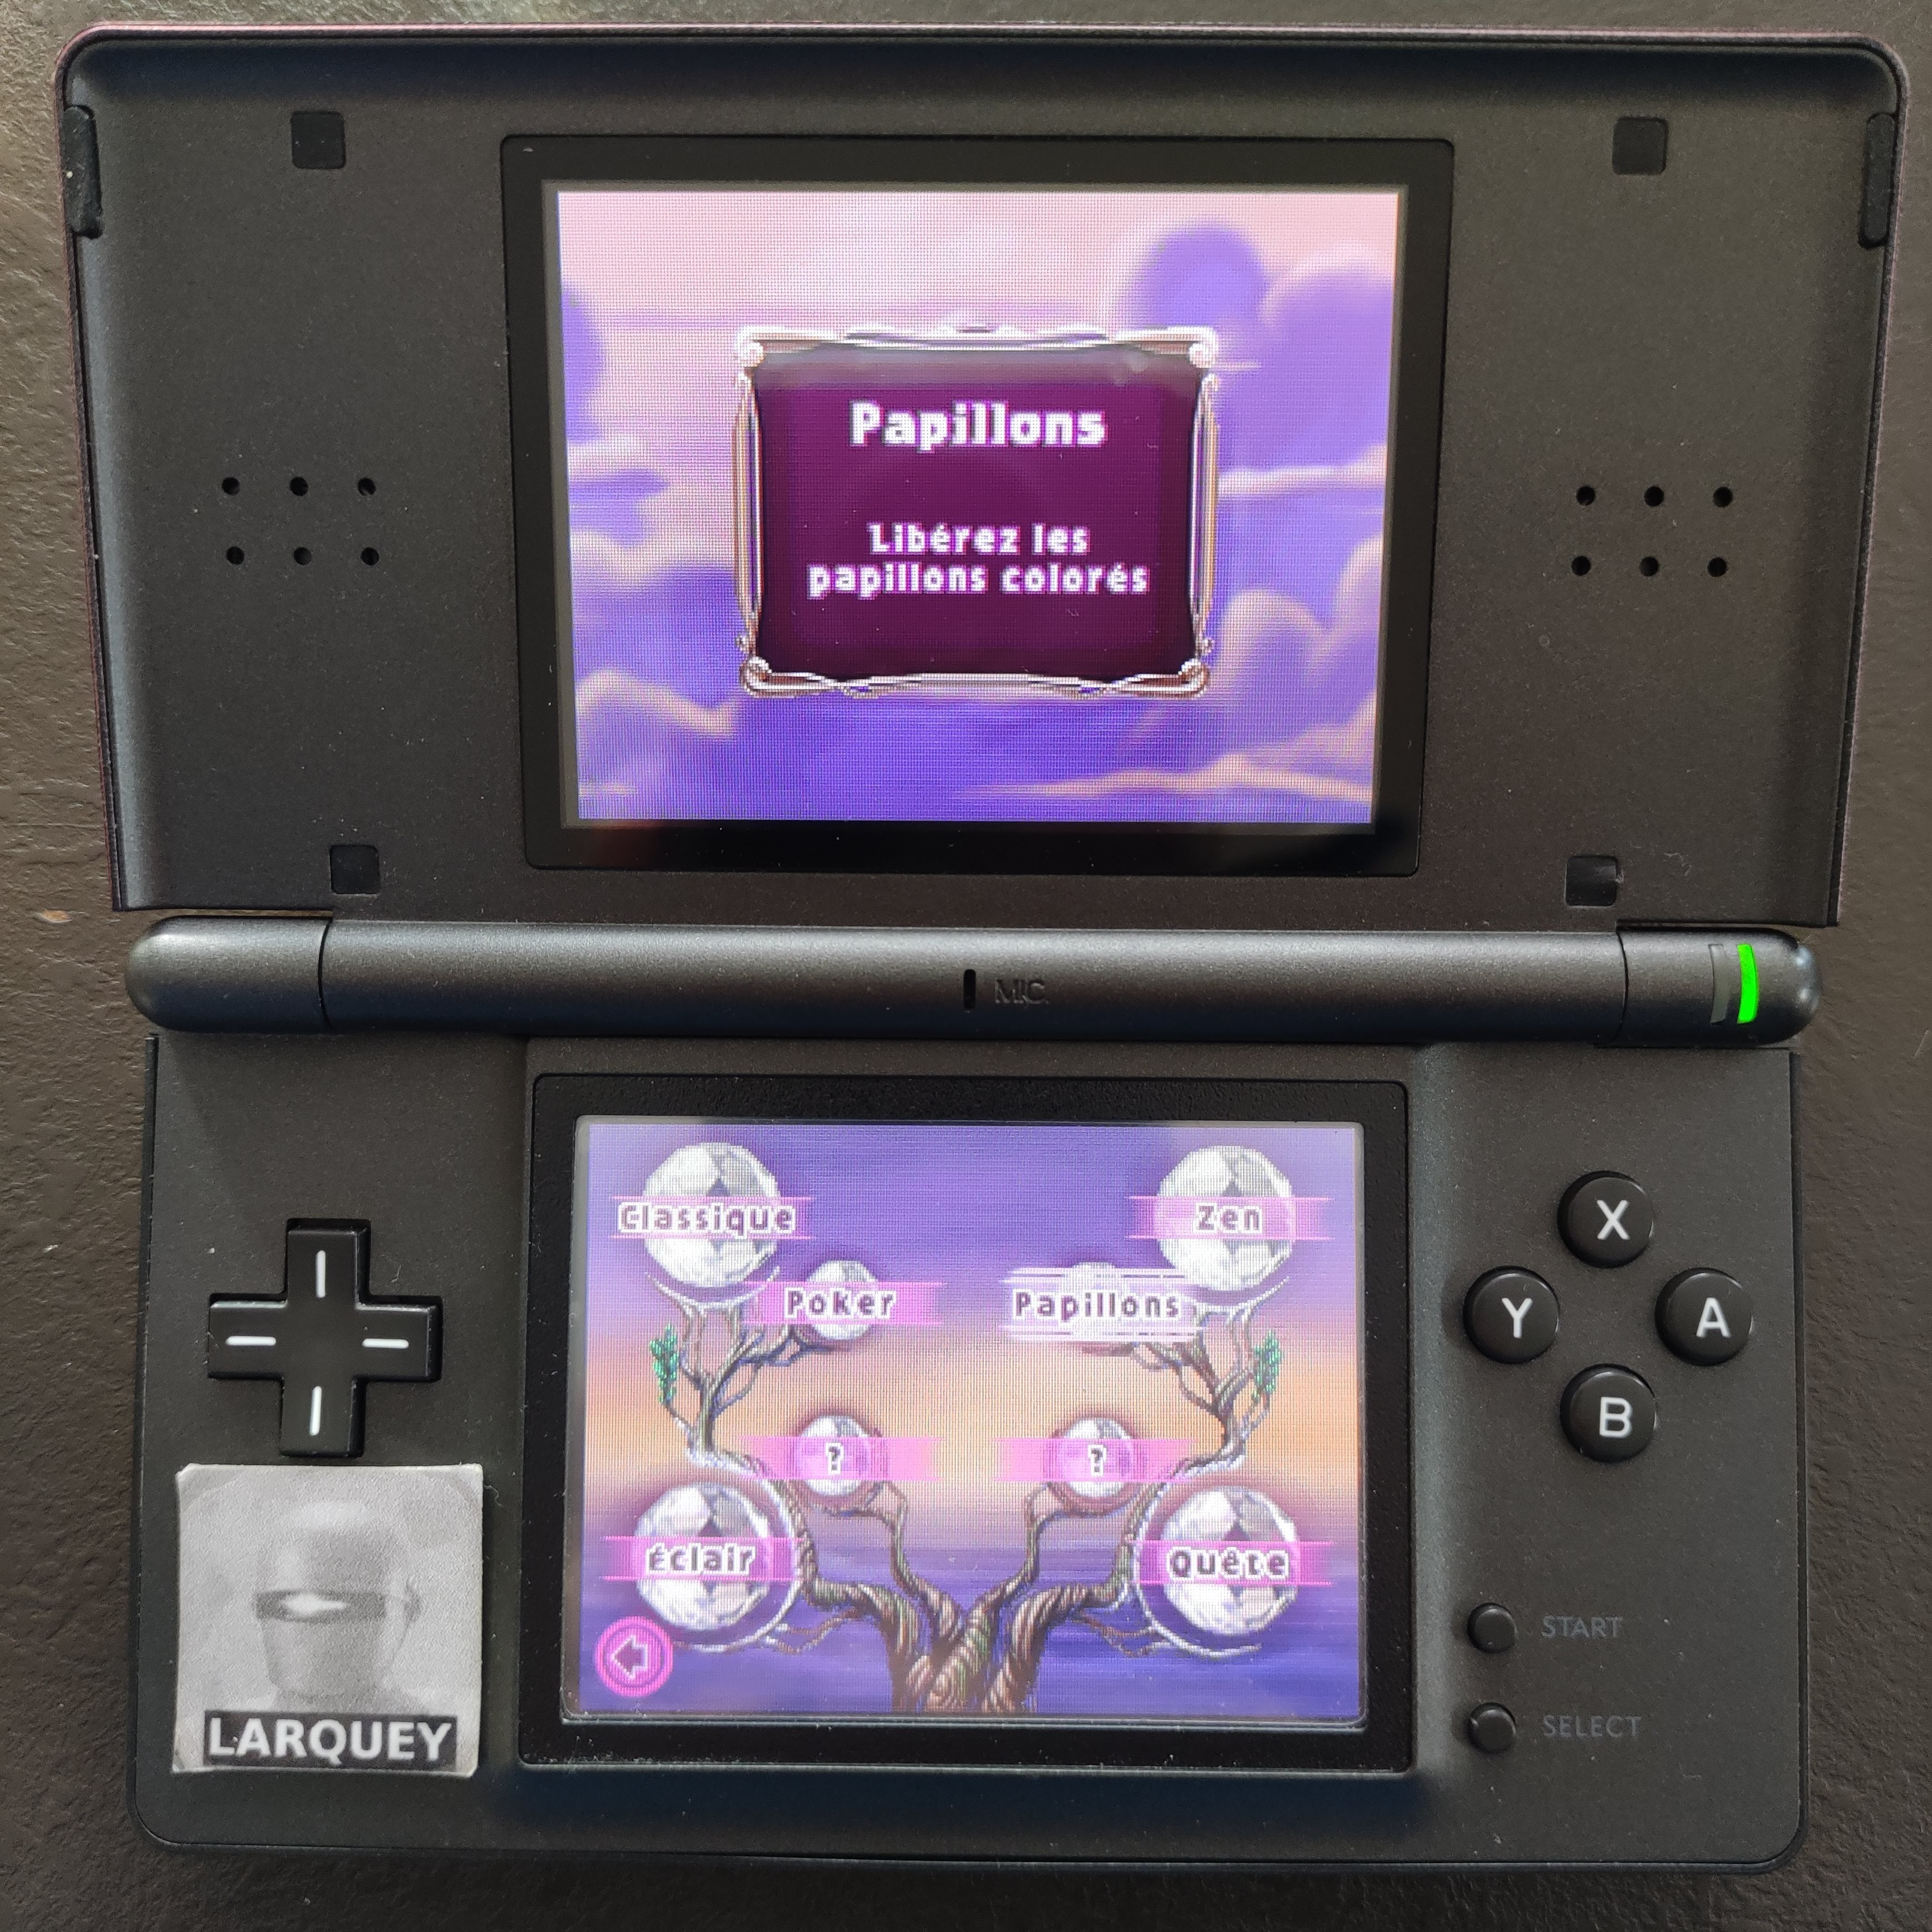 Larquey: Bejeweled 3: Butterflies [Number of Hypercubes] (Nintendo DS) 0 points on 2020-09-27 04:09:54